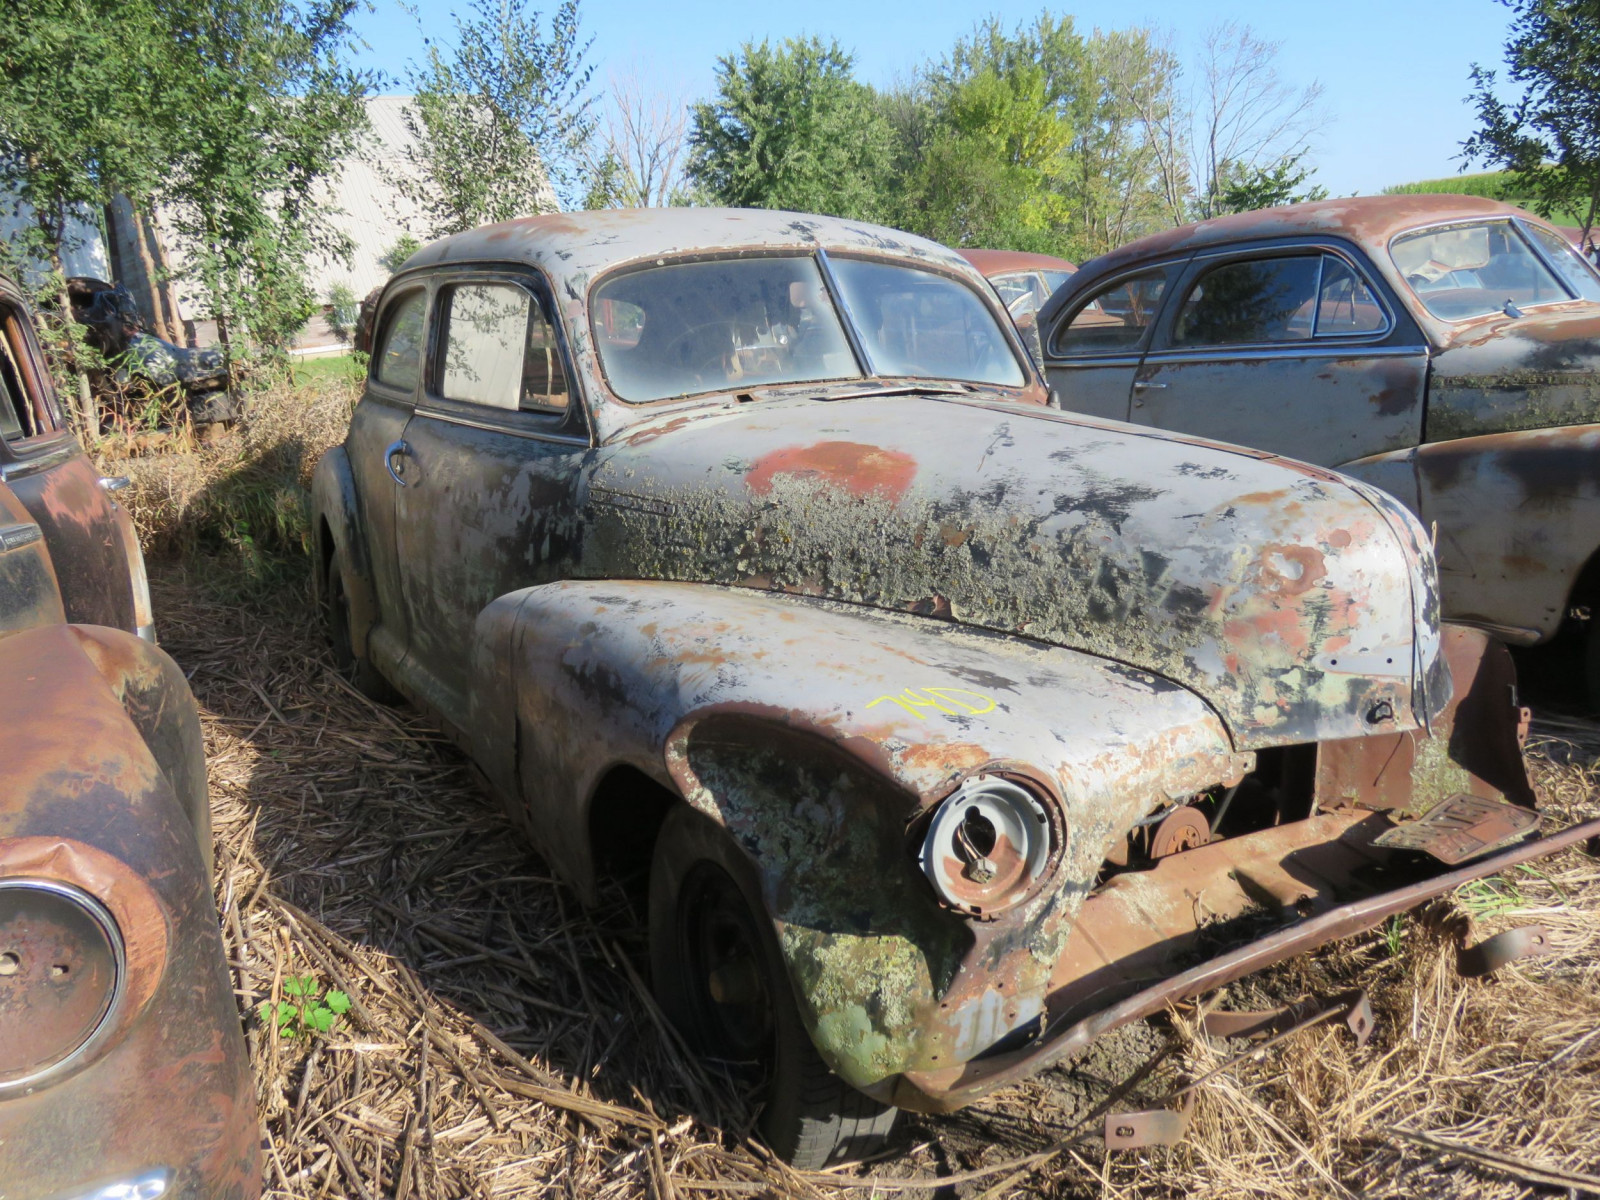 1946/7 Chevrolet for Project or Parts - Image 1